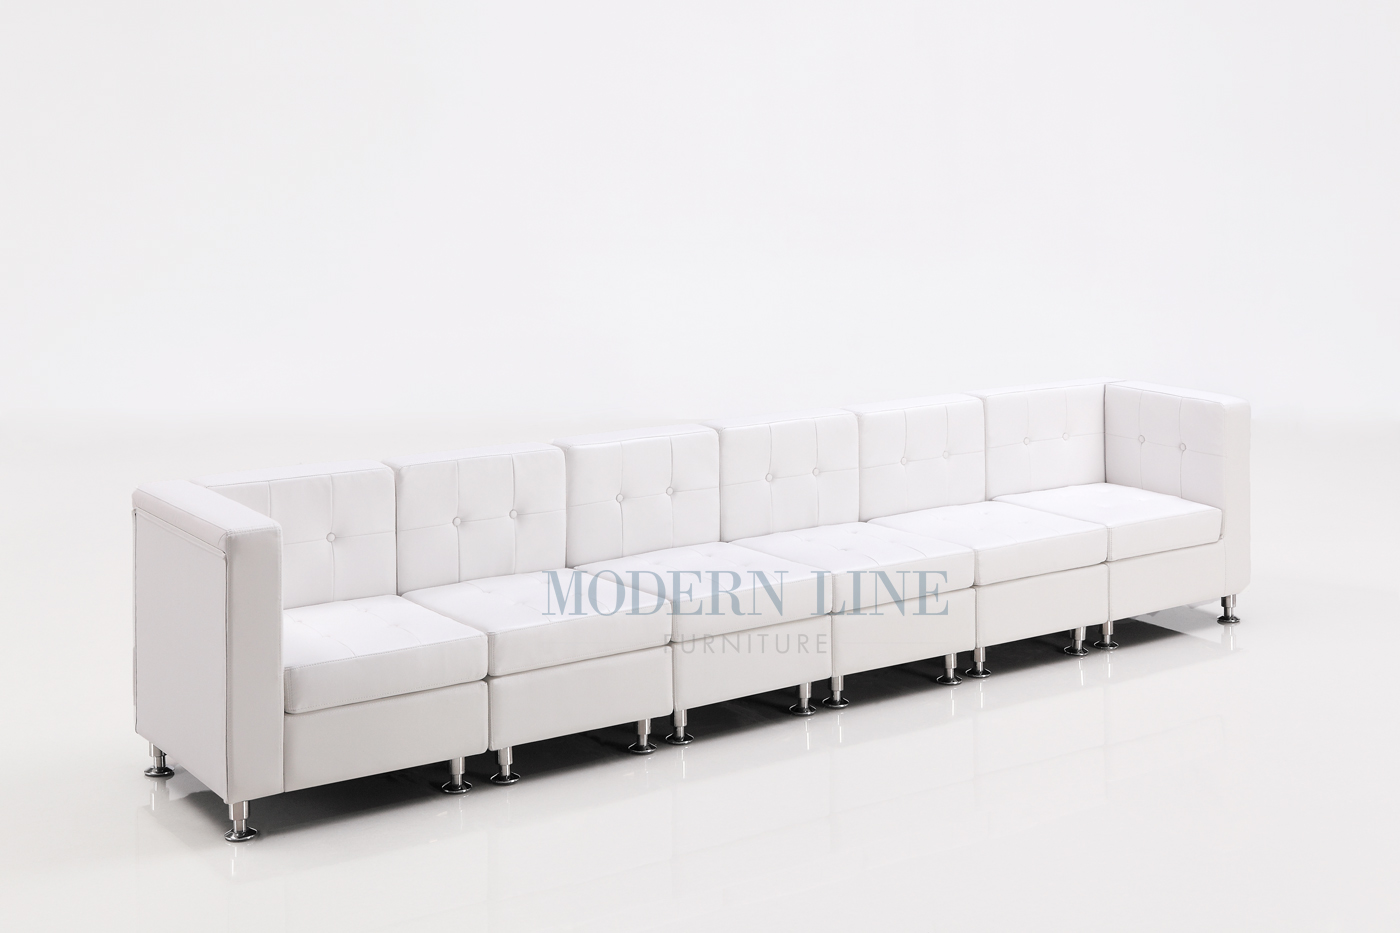 commercial sofas and chairs wrought iron outdoor modern line furniture custom made